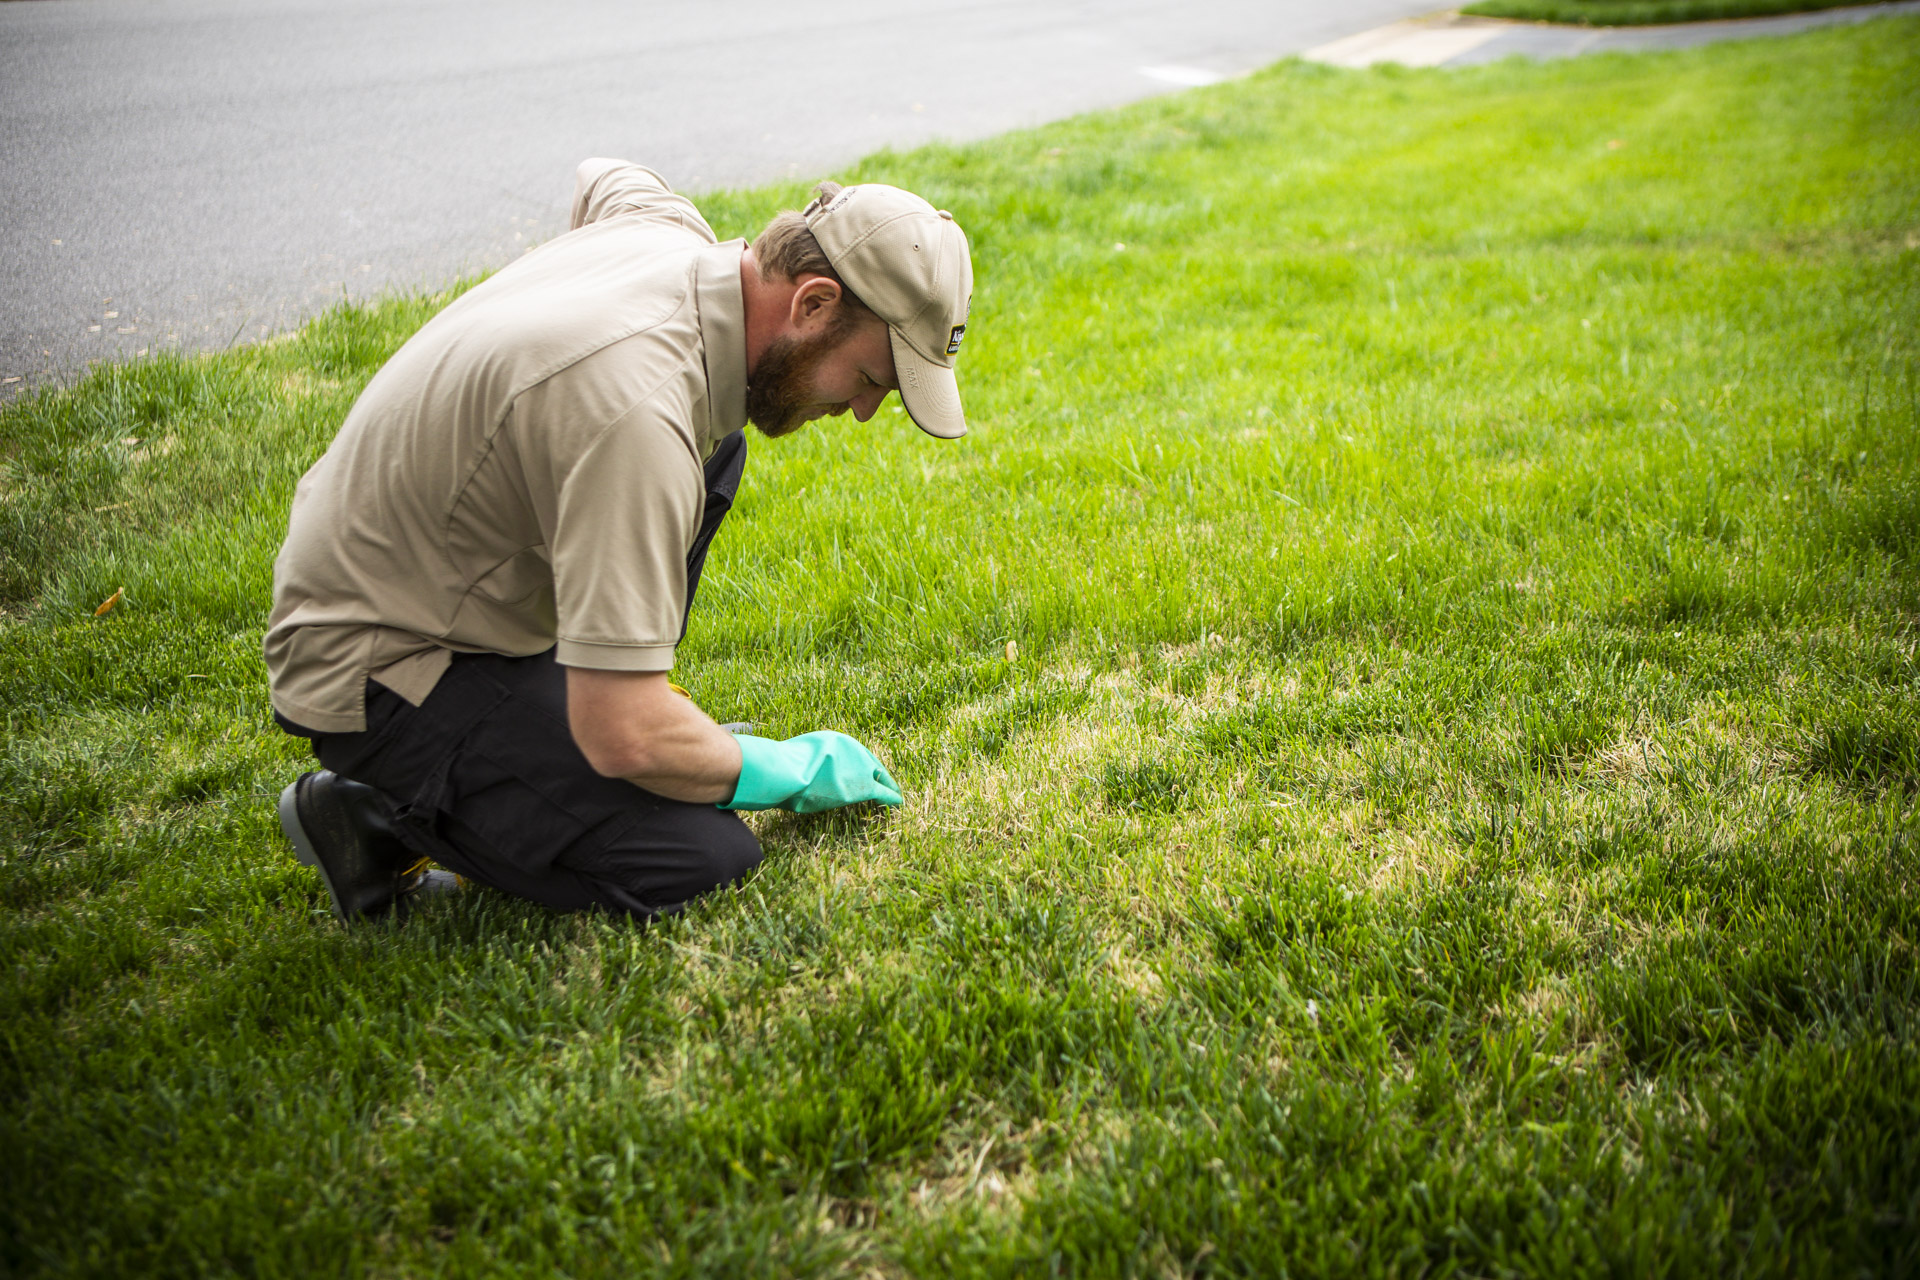 Lawn inspection